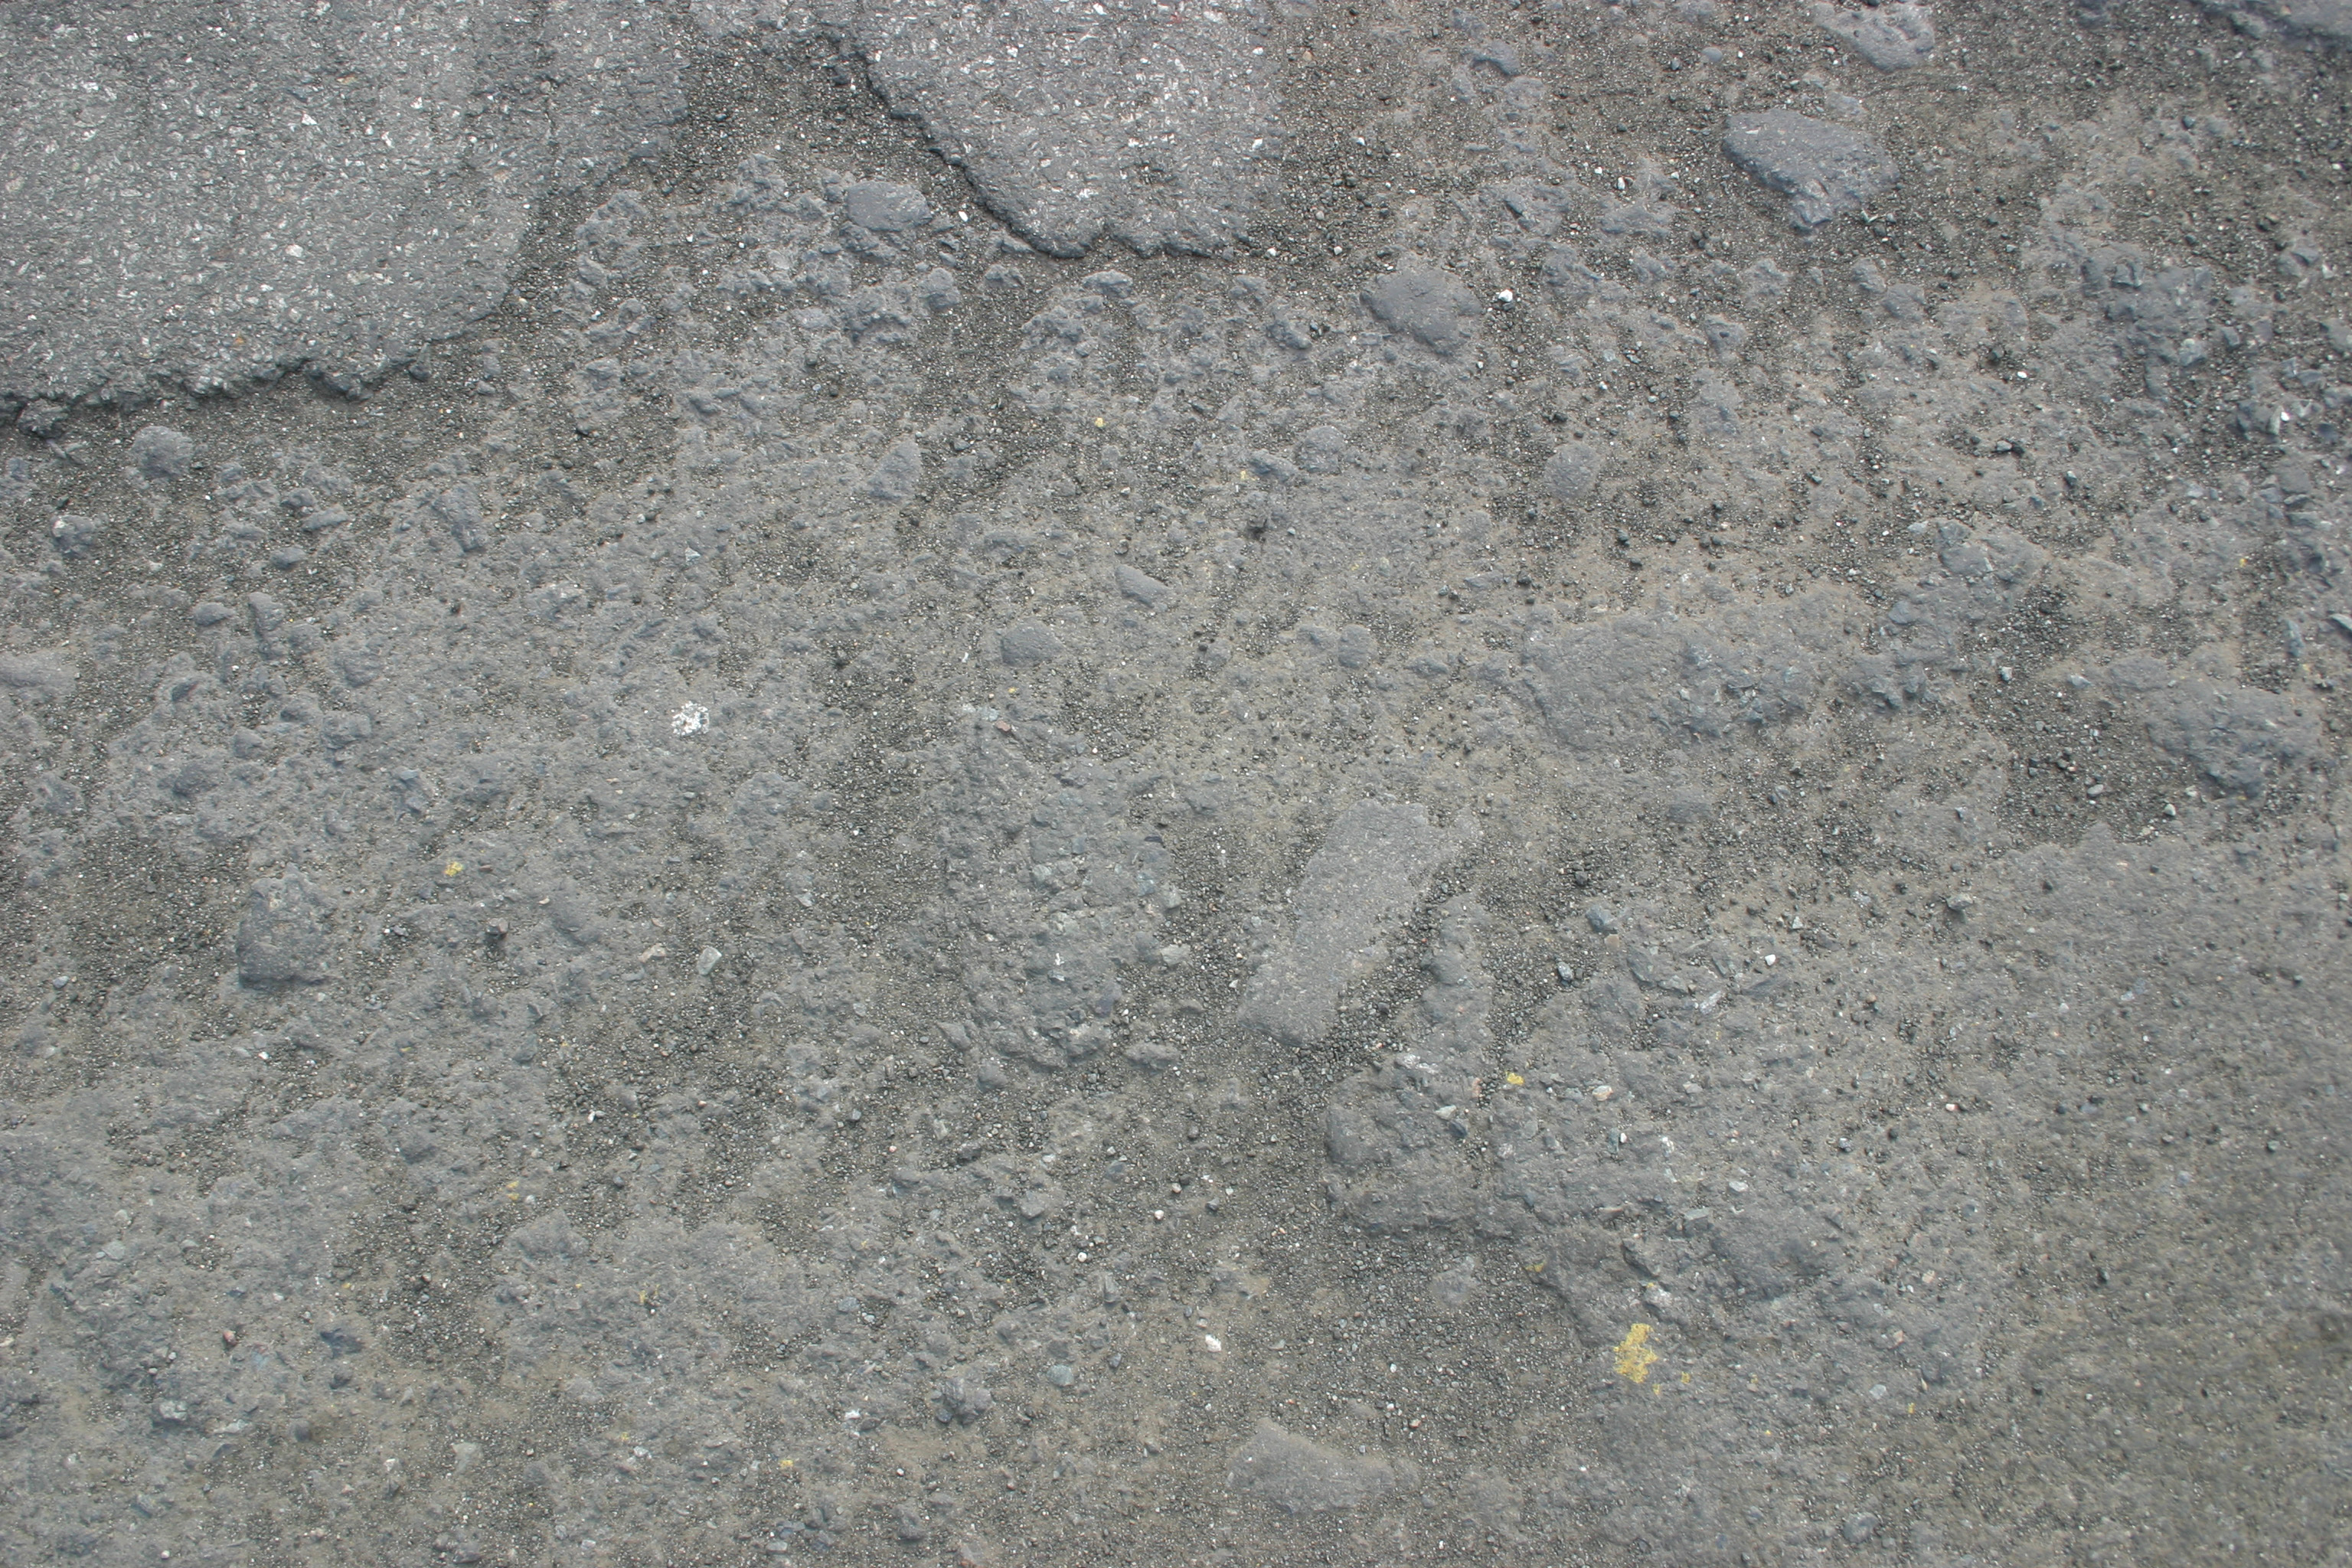 Asphalt Stone Background One Hundred and Fifteen | Photo Texture ...